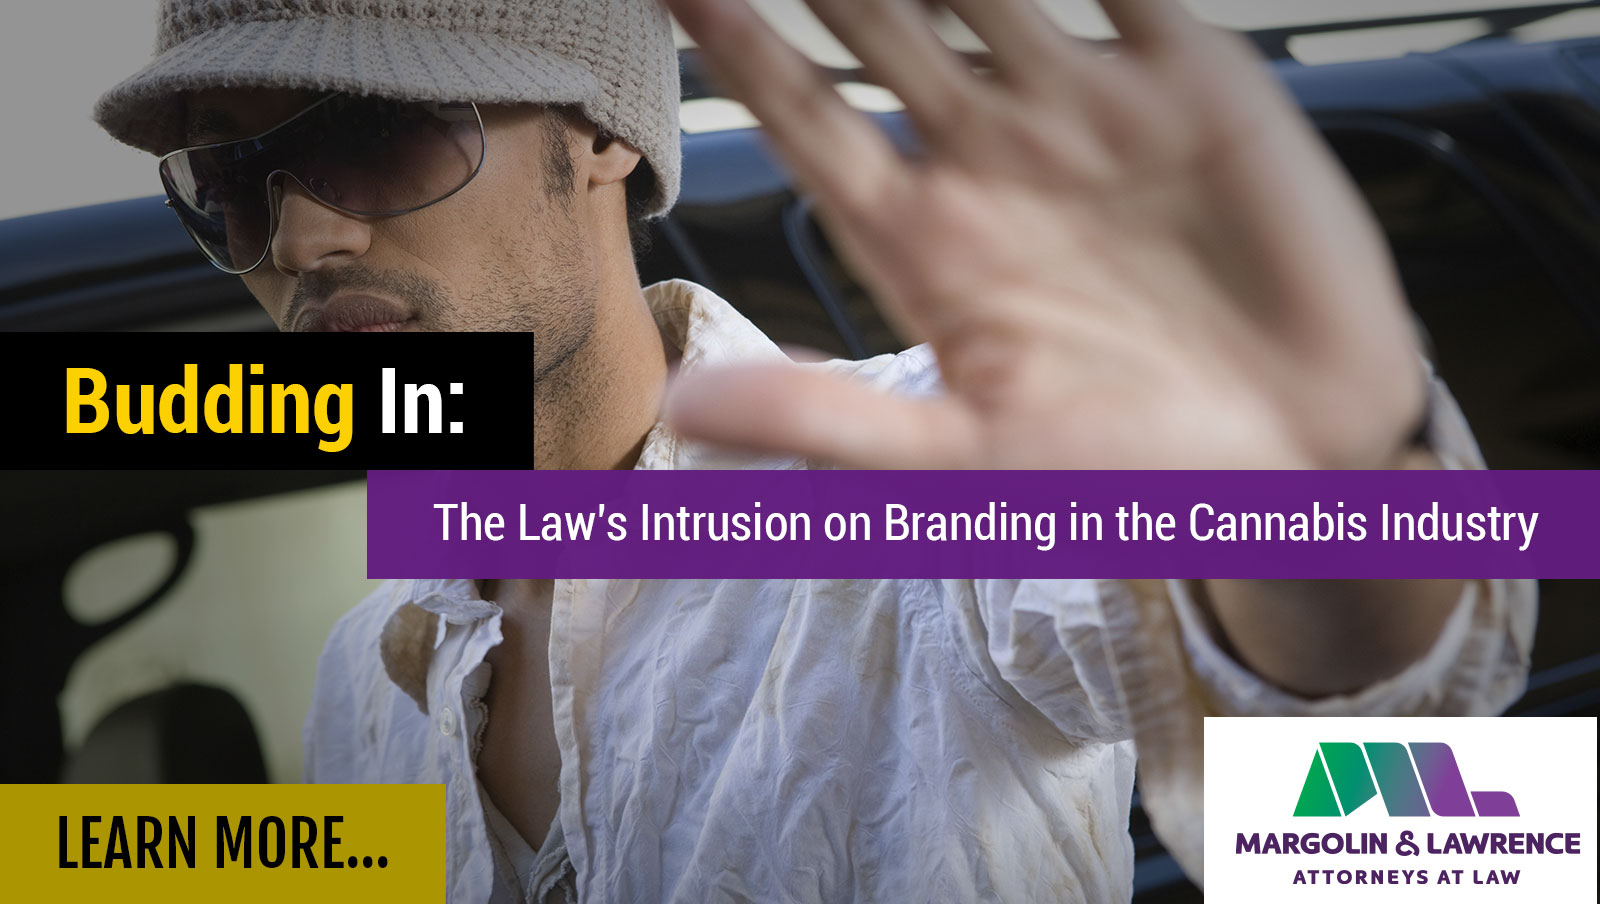 Budding In: The Law's Intrusion on Branding inthe Cannabis Industry